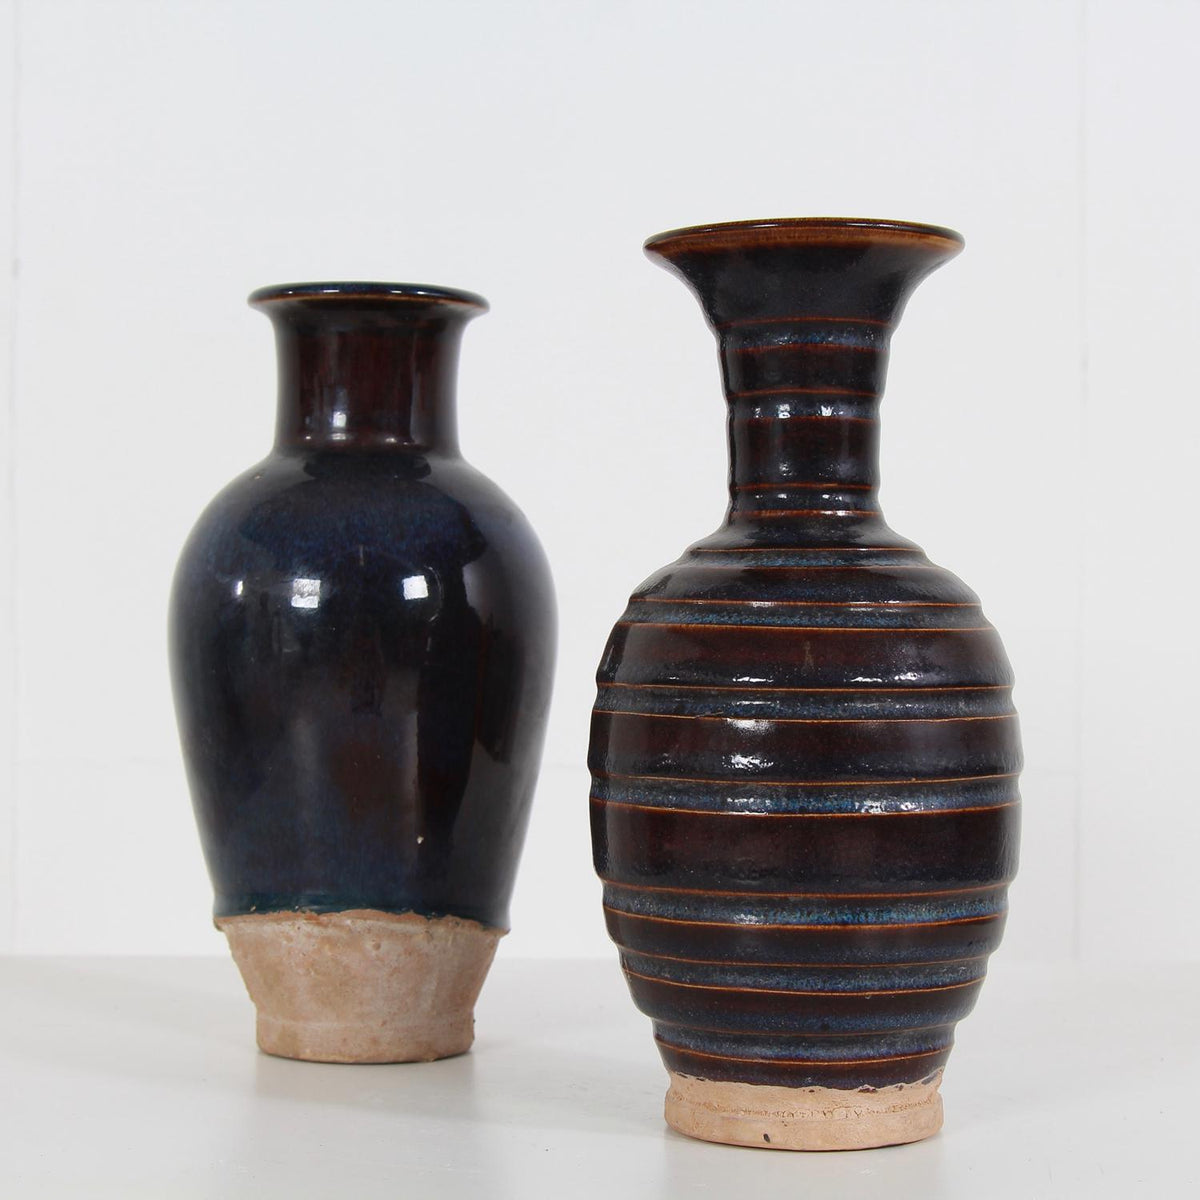 COLLECTION OF TWO DELICATE  GLAZED CERAMIC CHINESE  VASES